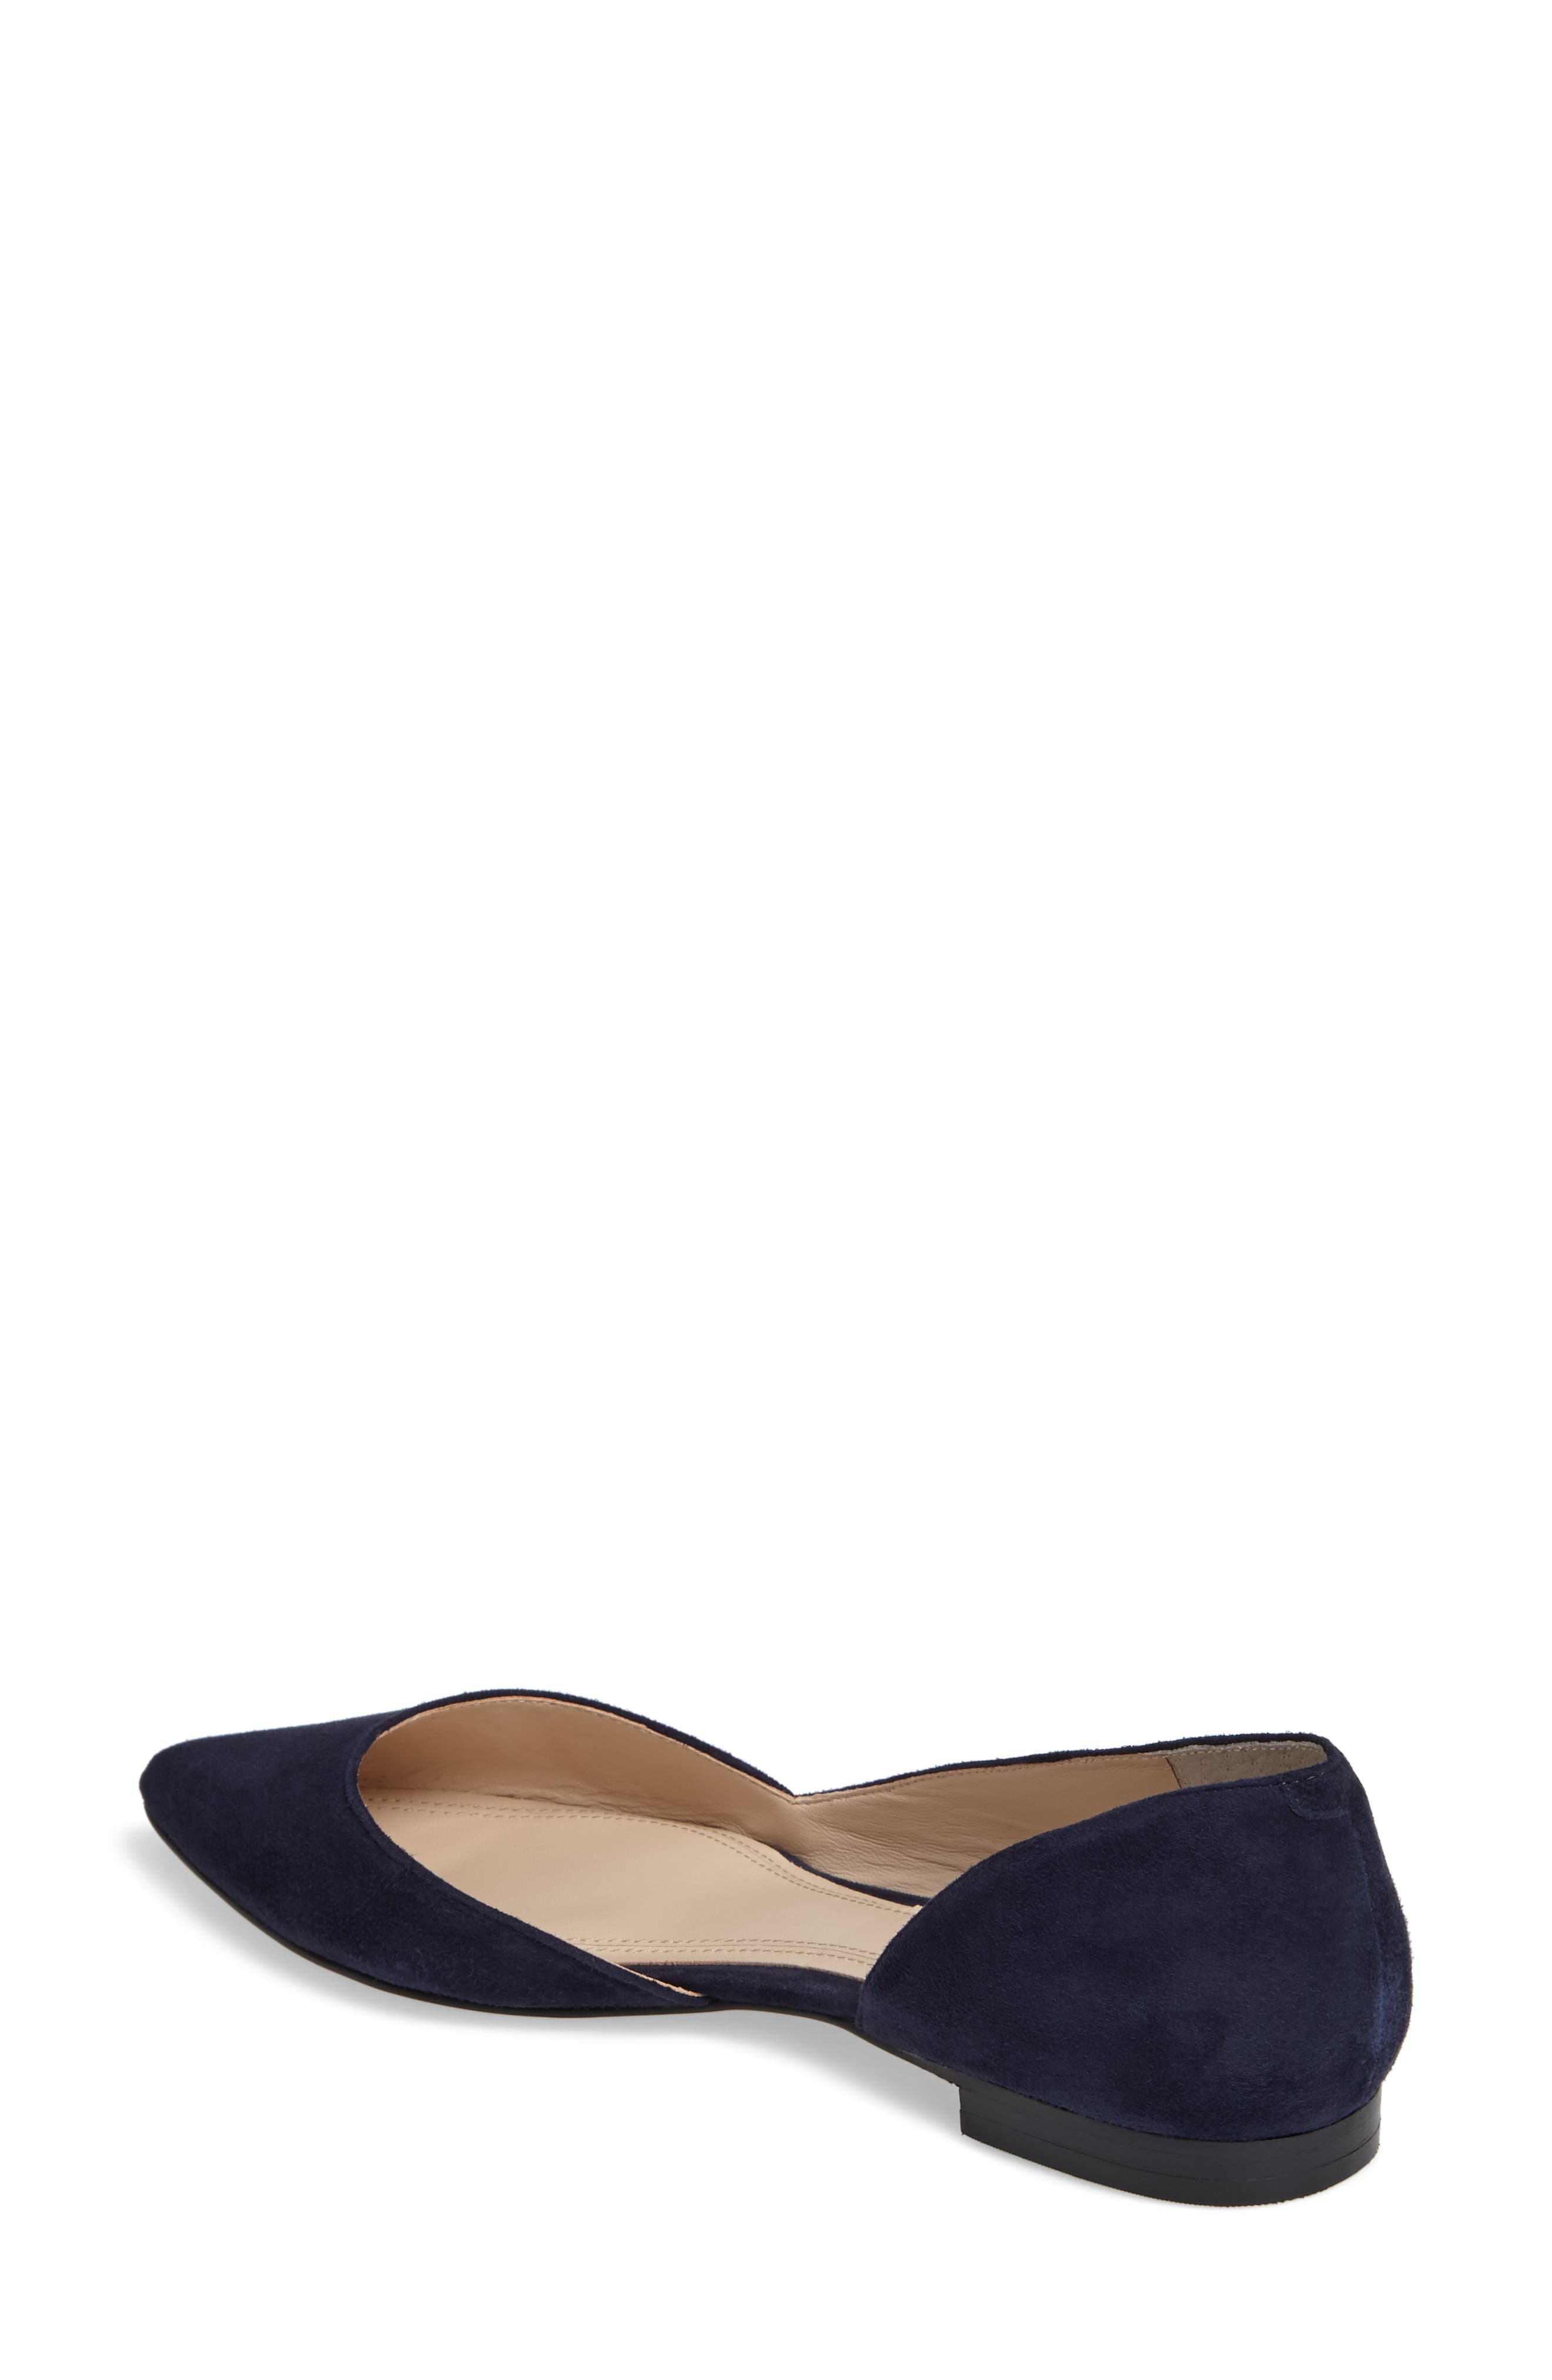 'Sunny' Half d'Orsay Flat,                             Alternate thumbnail 2, color,                             Bold Blue Suede